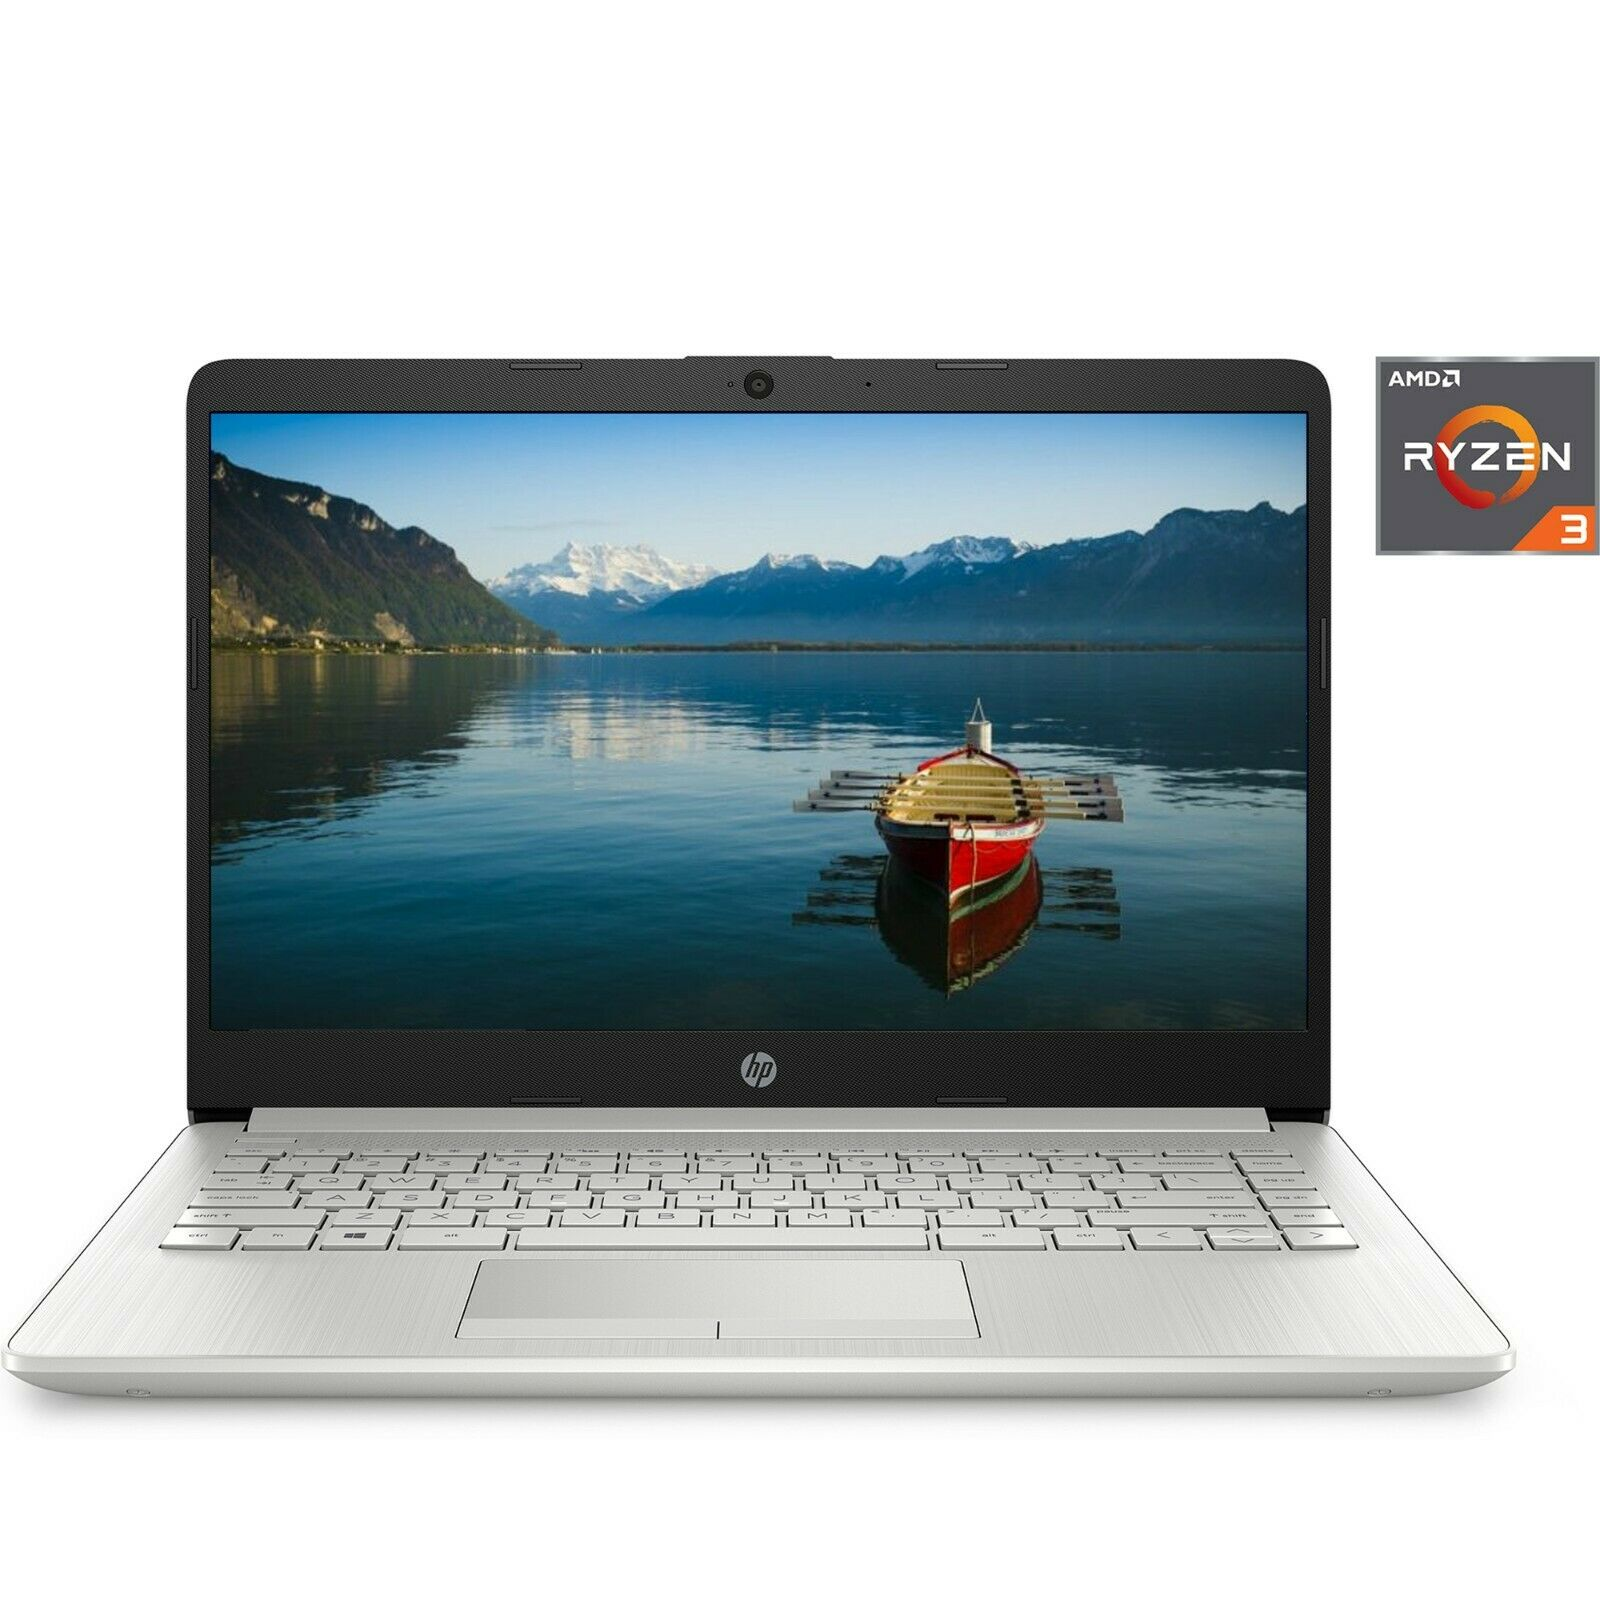 new-hp-14-hd-laptop-amd-ryzen-3-3-5ghz-128gb-ssd-4gb-ram-mic-webcam-windows-10